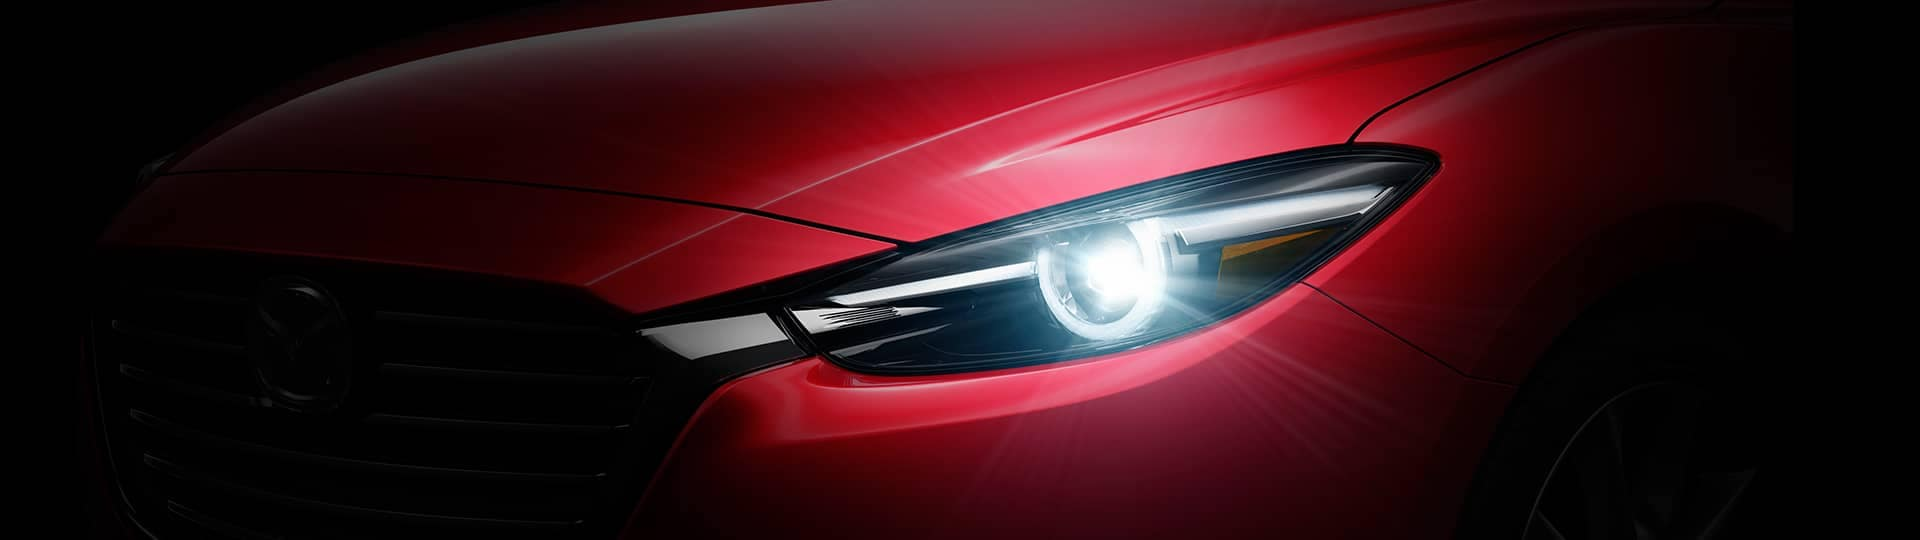 2018 Mazda3 headlight